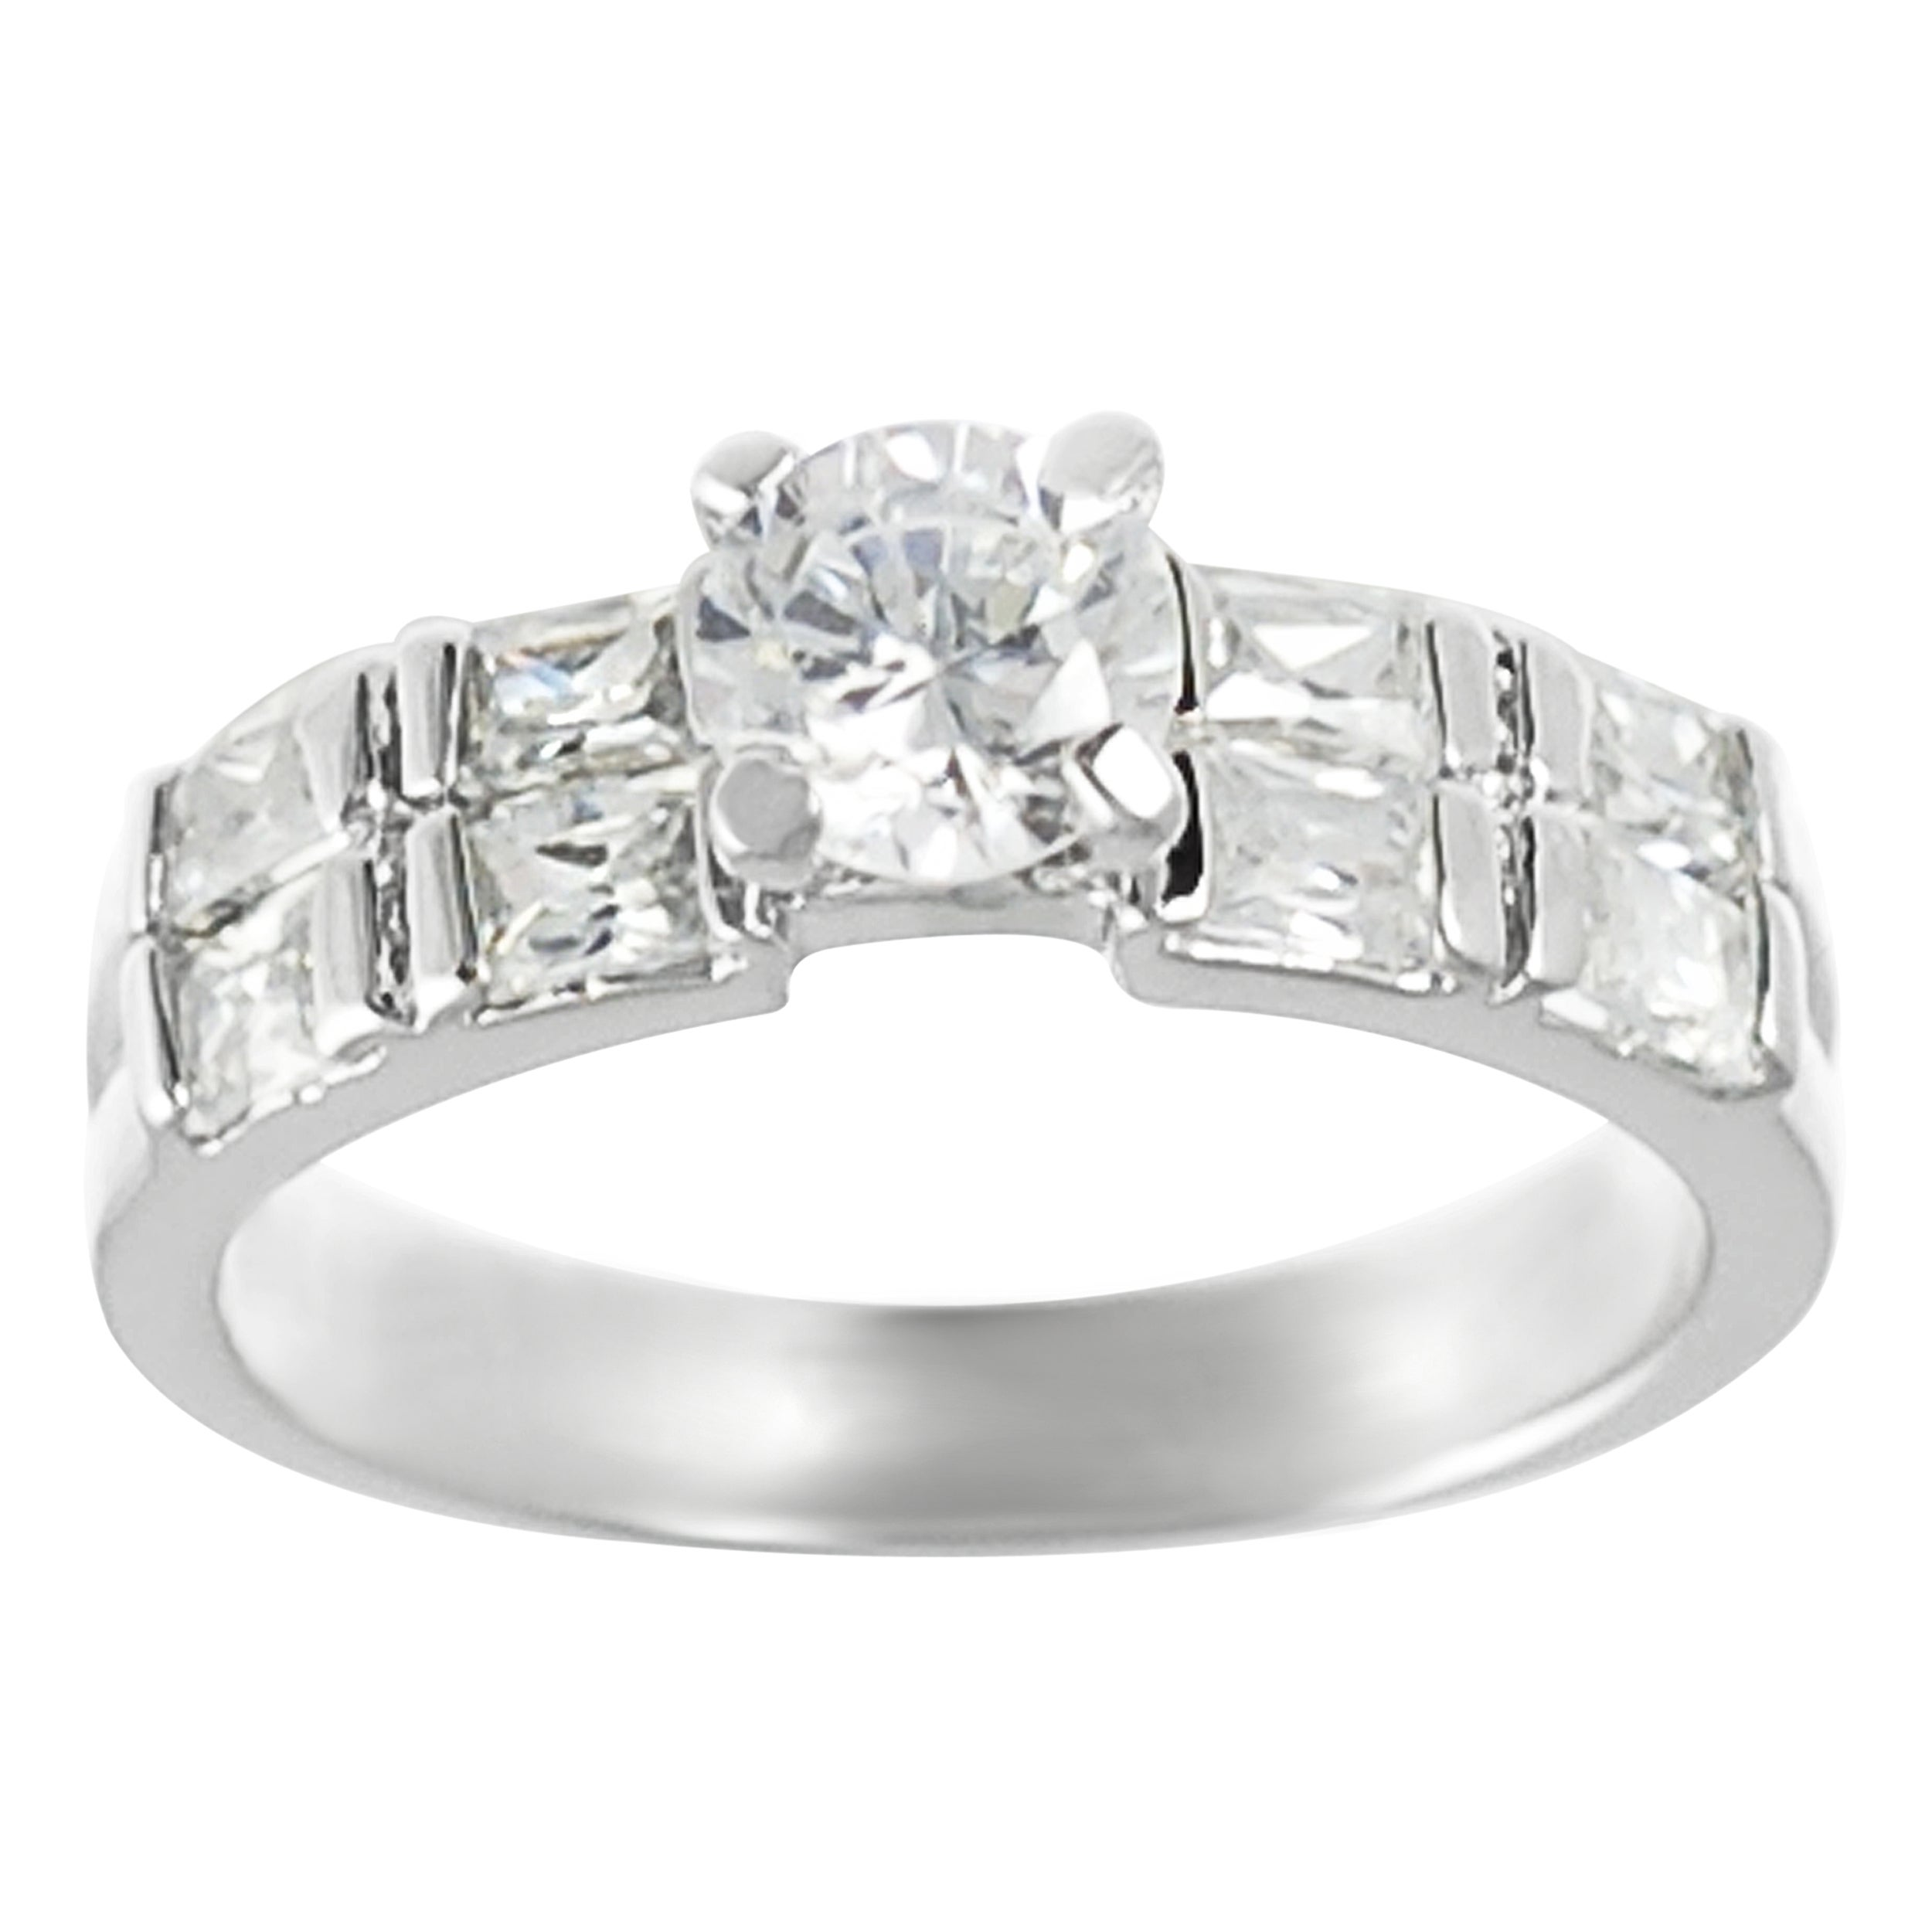 Tressa Silver Round and Emerald-cut Cubic Zirconia Engagement Ring